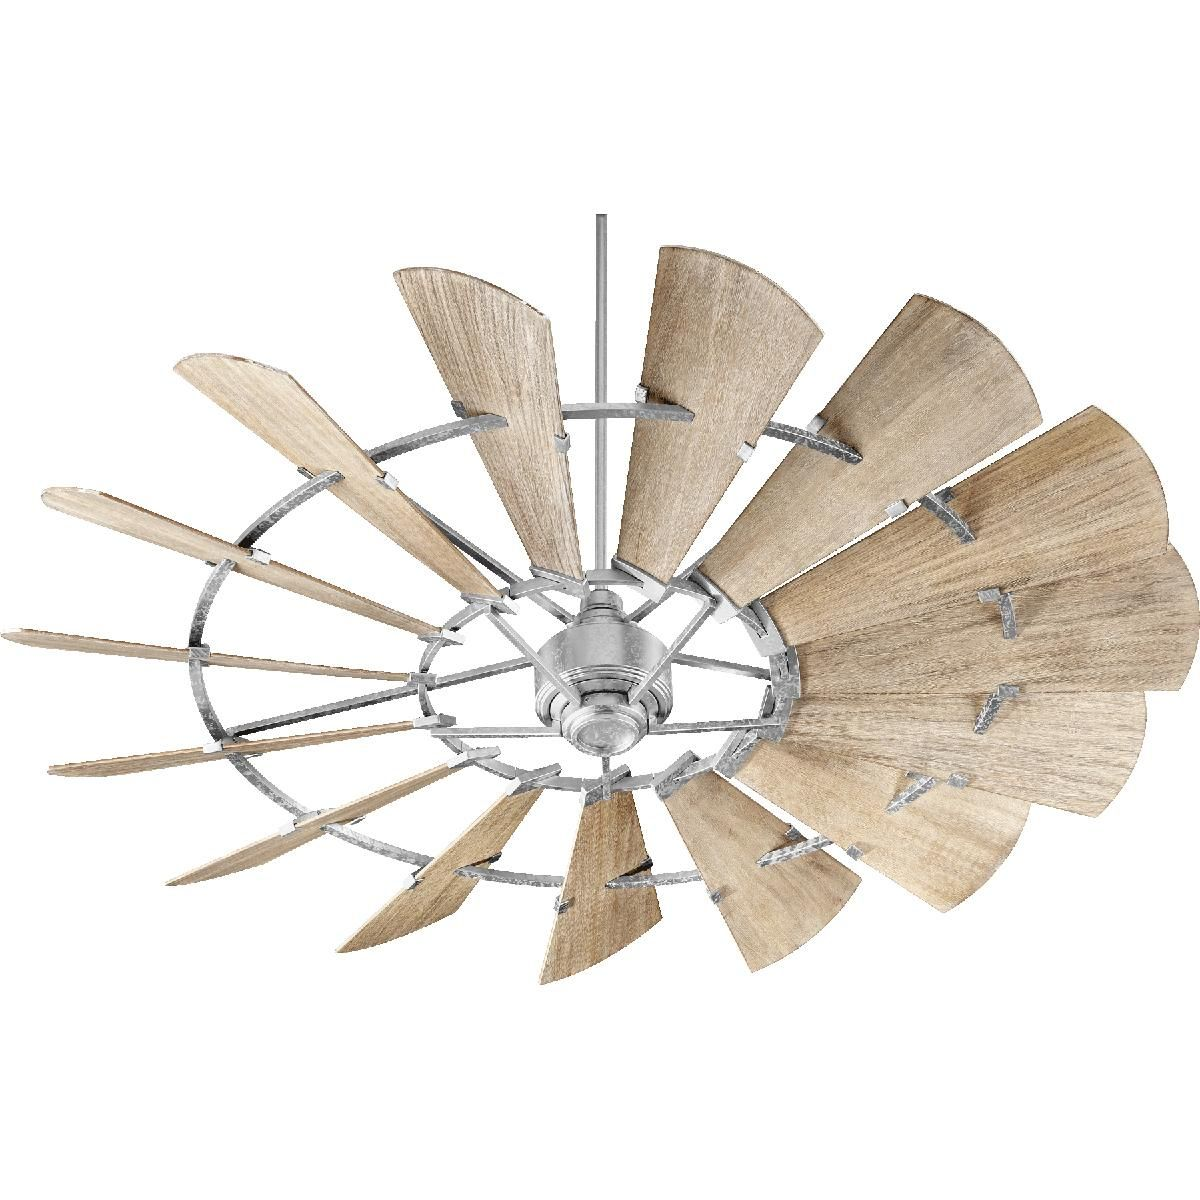 72 Rustic Windmill Ceiling Fan With Images Windmill Ceiling Fan 72 Ceiling Fan Transitional Ceiling Fans